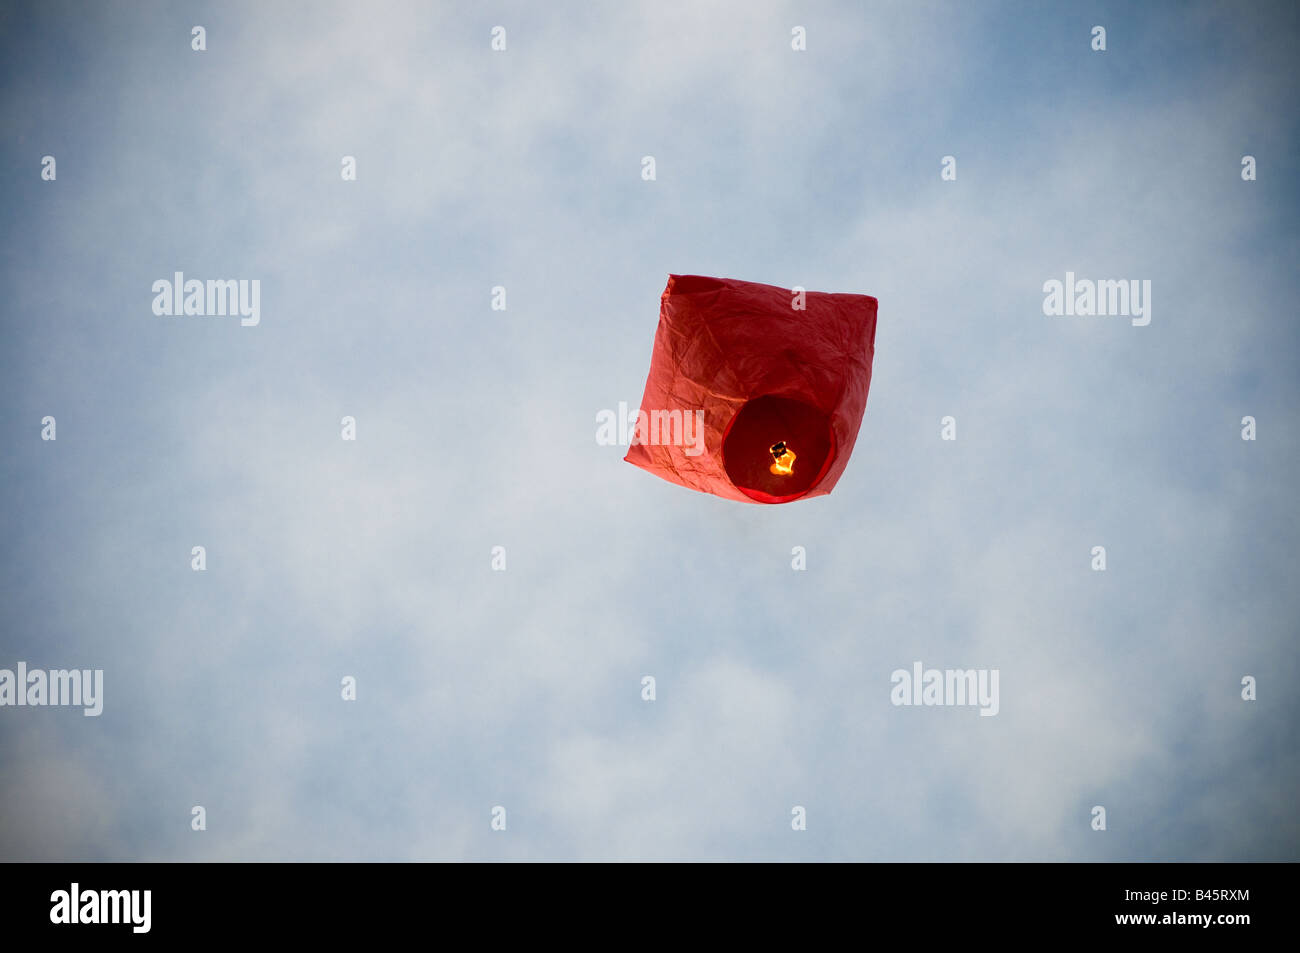 Hot air balloon lifting up in sky - Stock Image